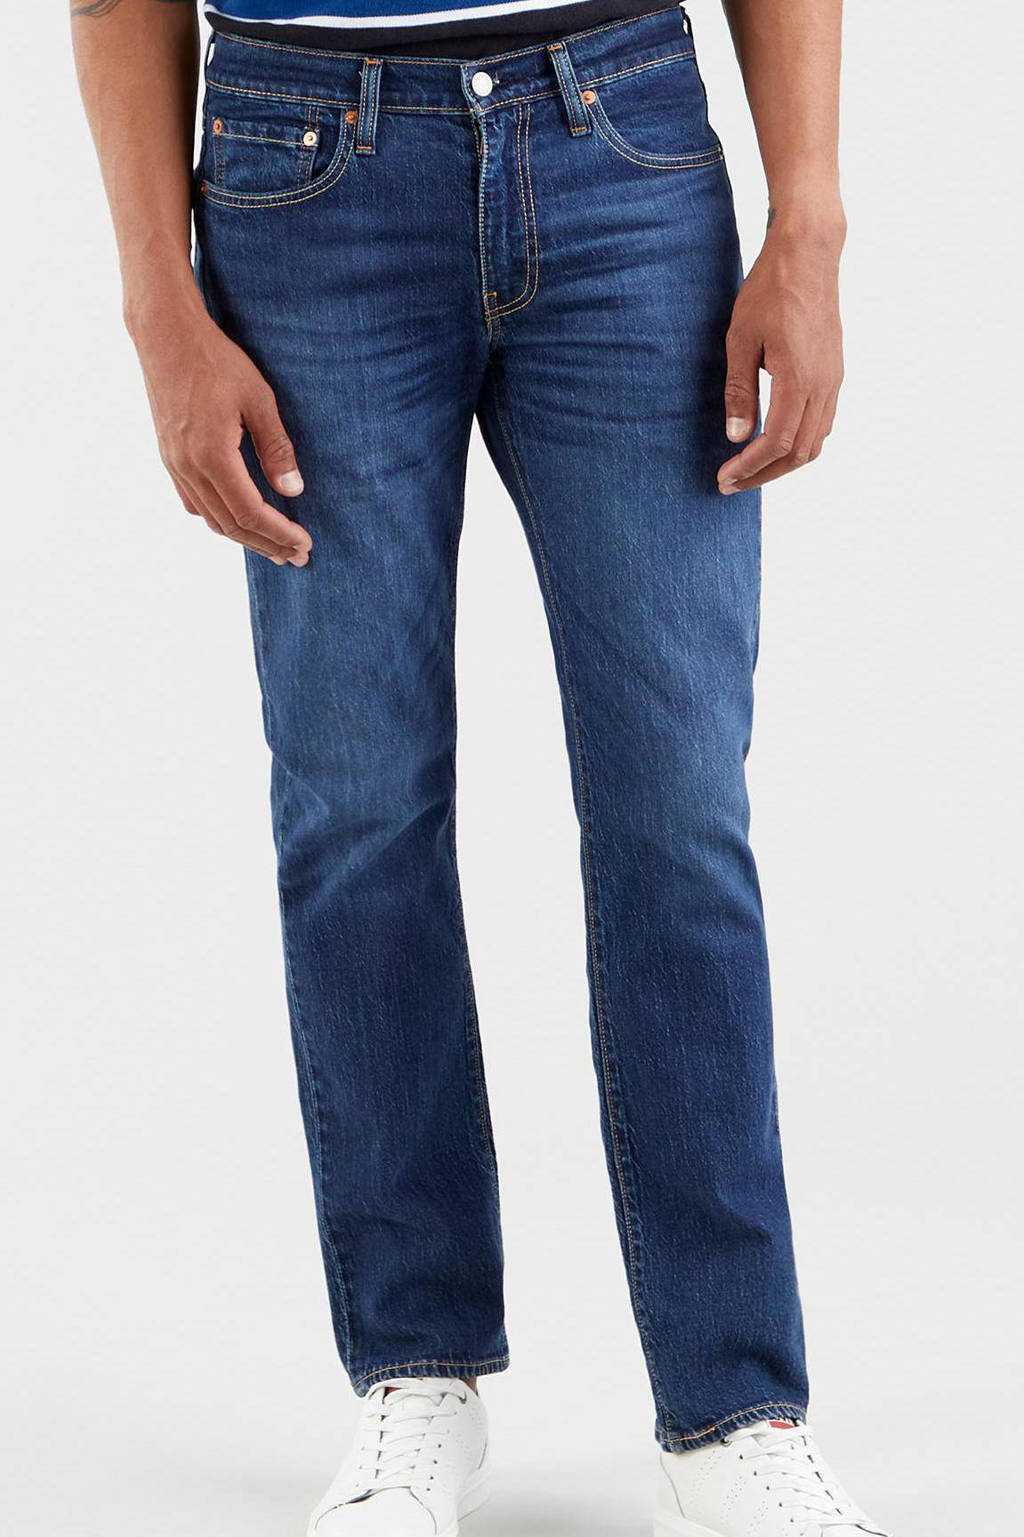 Levi's 514 straight fit jeans laurelhurst myself, Laurelhurst Myself